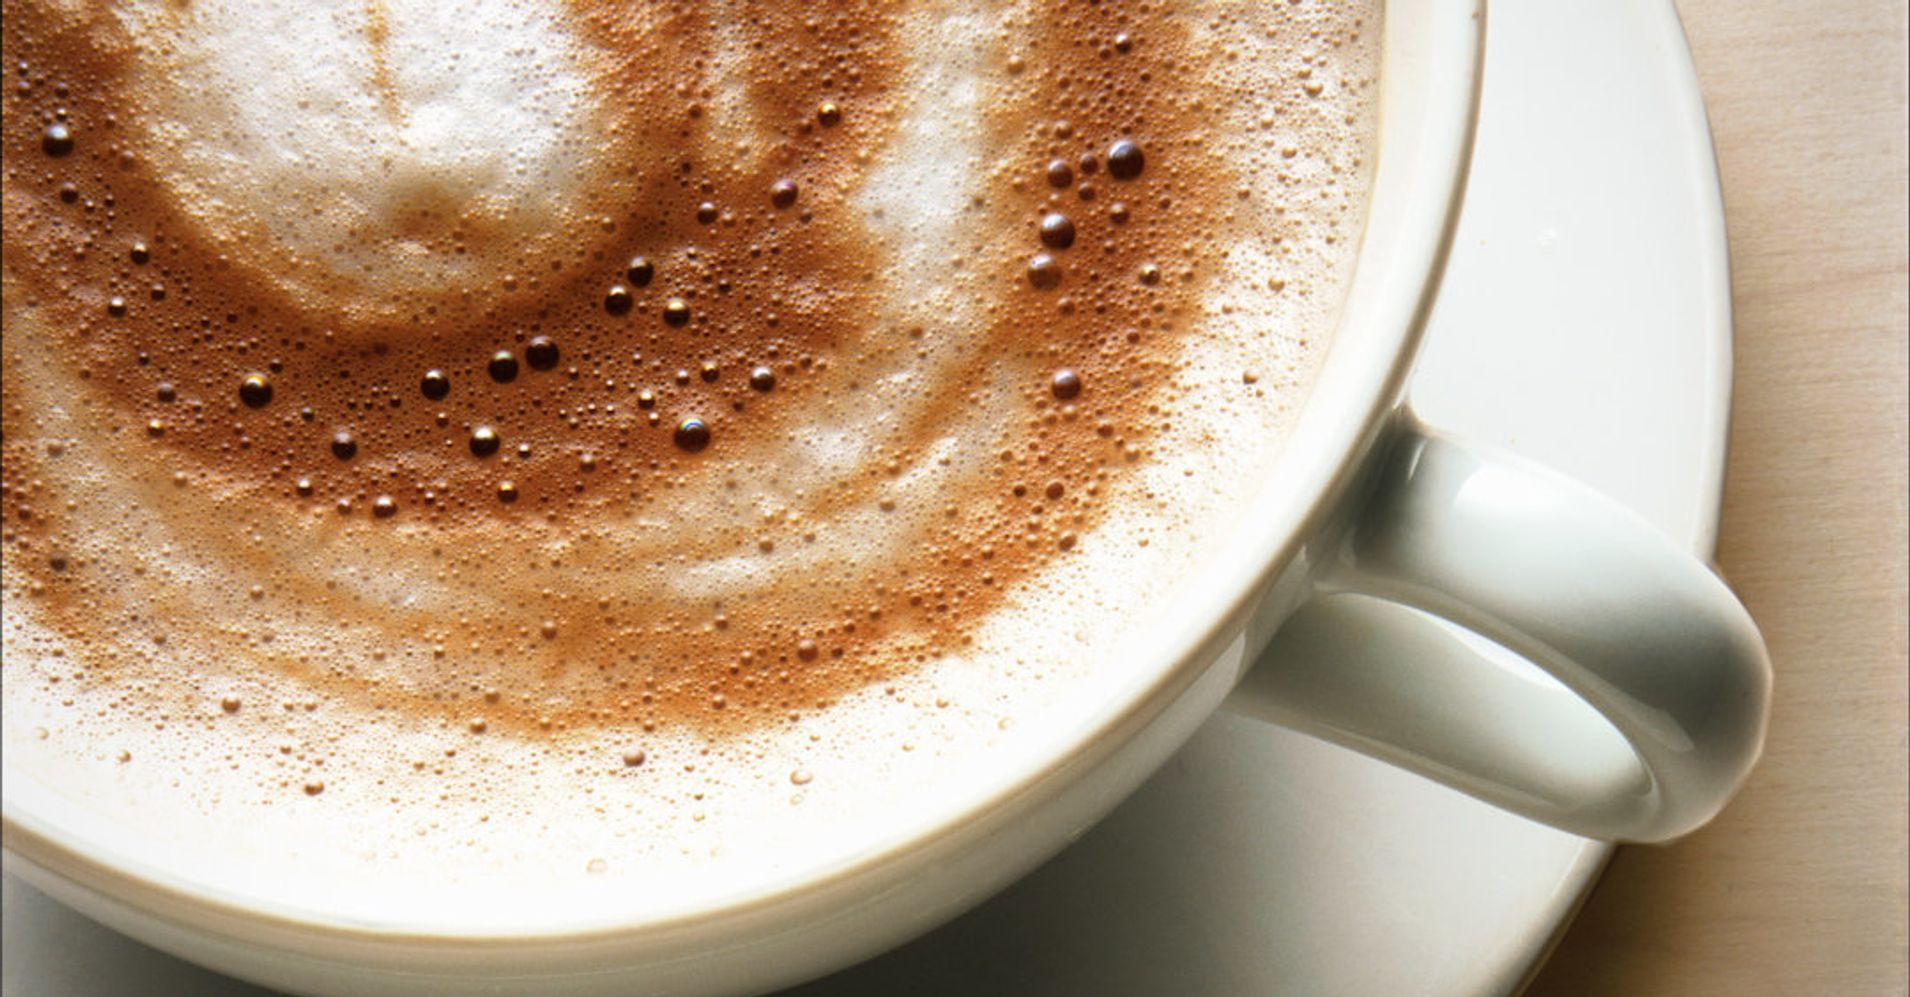 How To Say Good Morning In Korean Audio : This is the perfect time to drink coffee huffpost